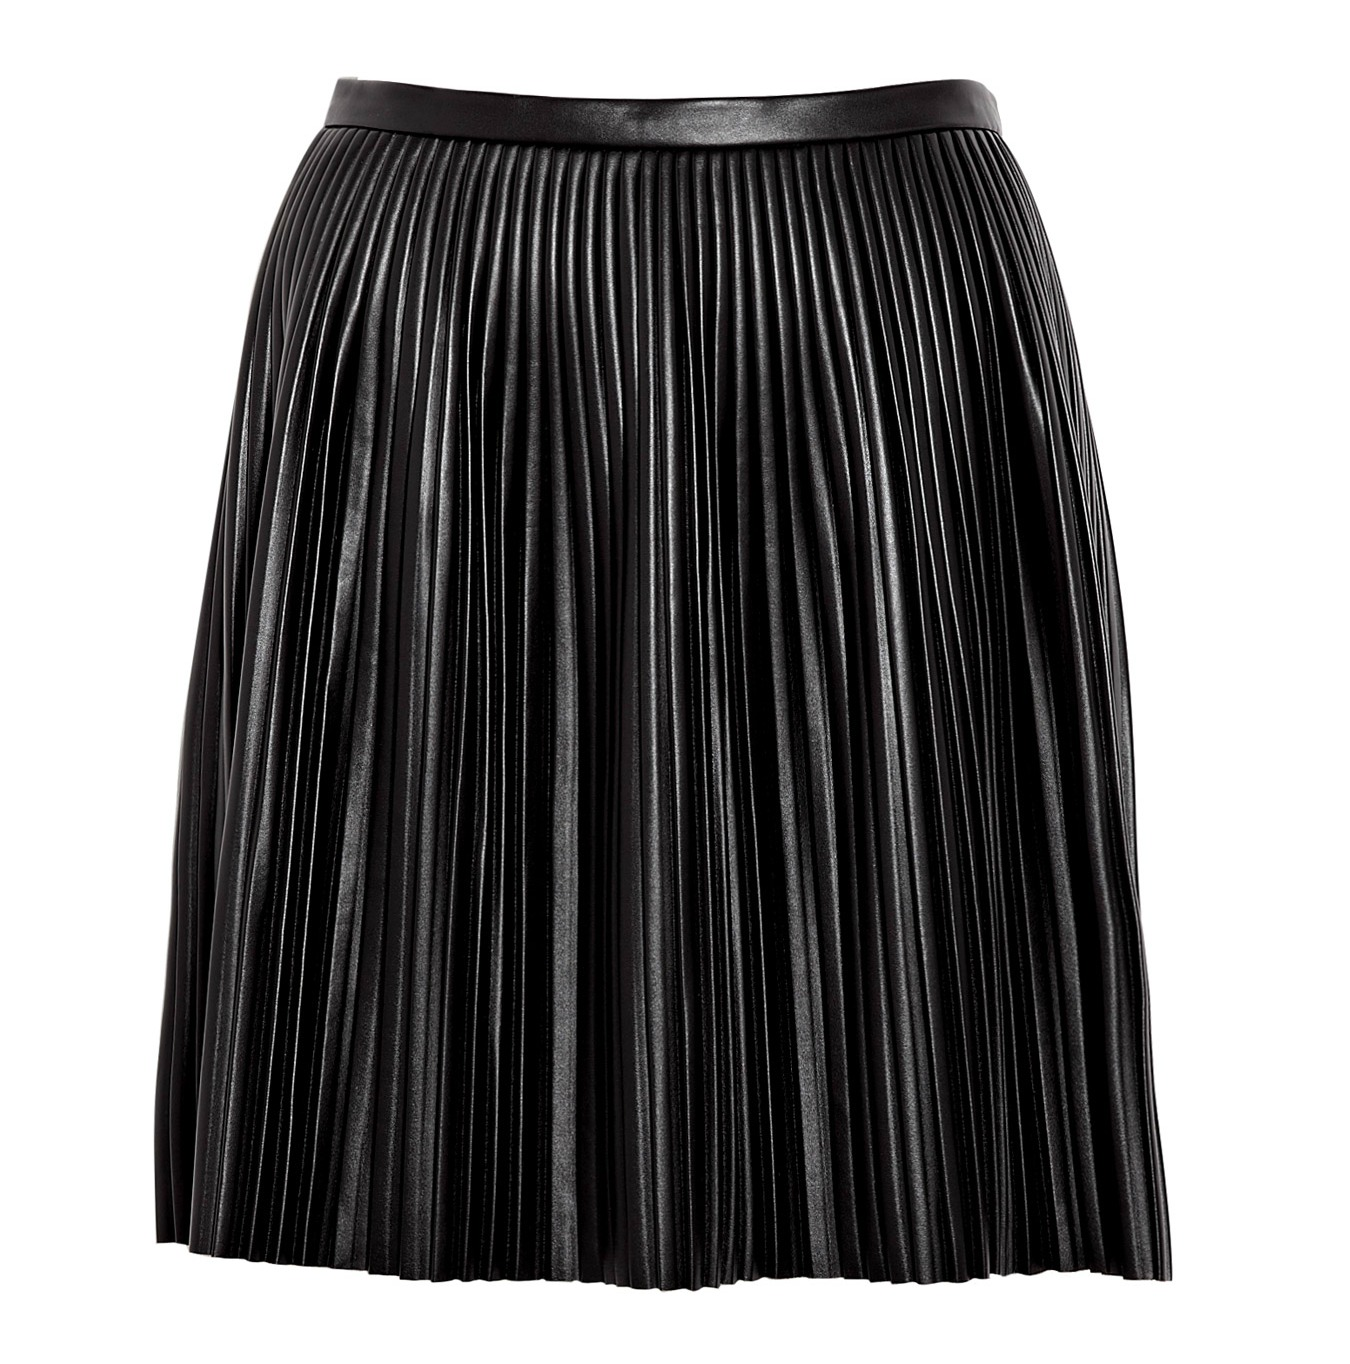 Shop for pleated skirt black online at Target. Free shipping on purchases over $35 and save 5% every day with your Target REDcard.